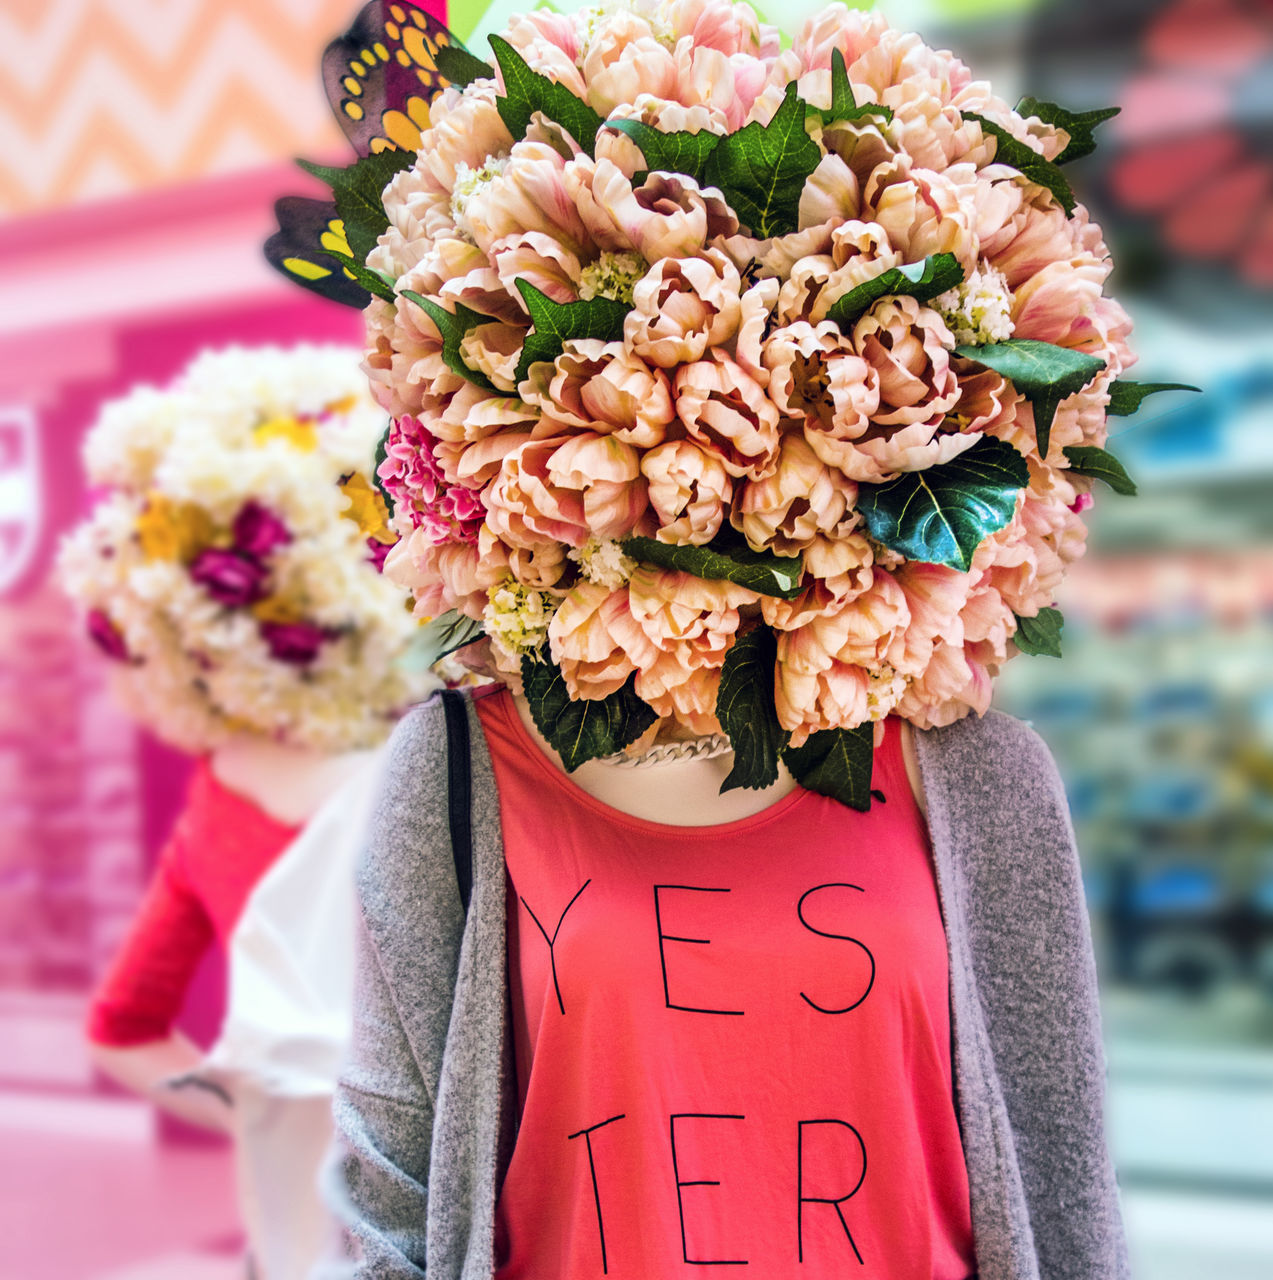 flower, bouquet, text, focus on foreground, day, outdoors, rose - flower, nature, pink color, one person, real people, freshness, beauty in nature, close-up, flower market, fragility, flower head, warm clothing